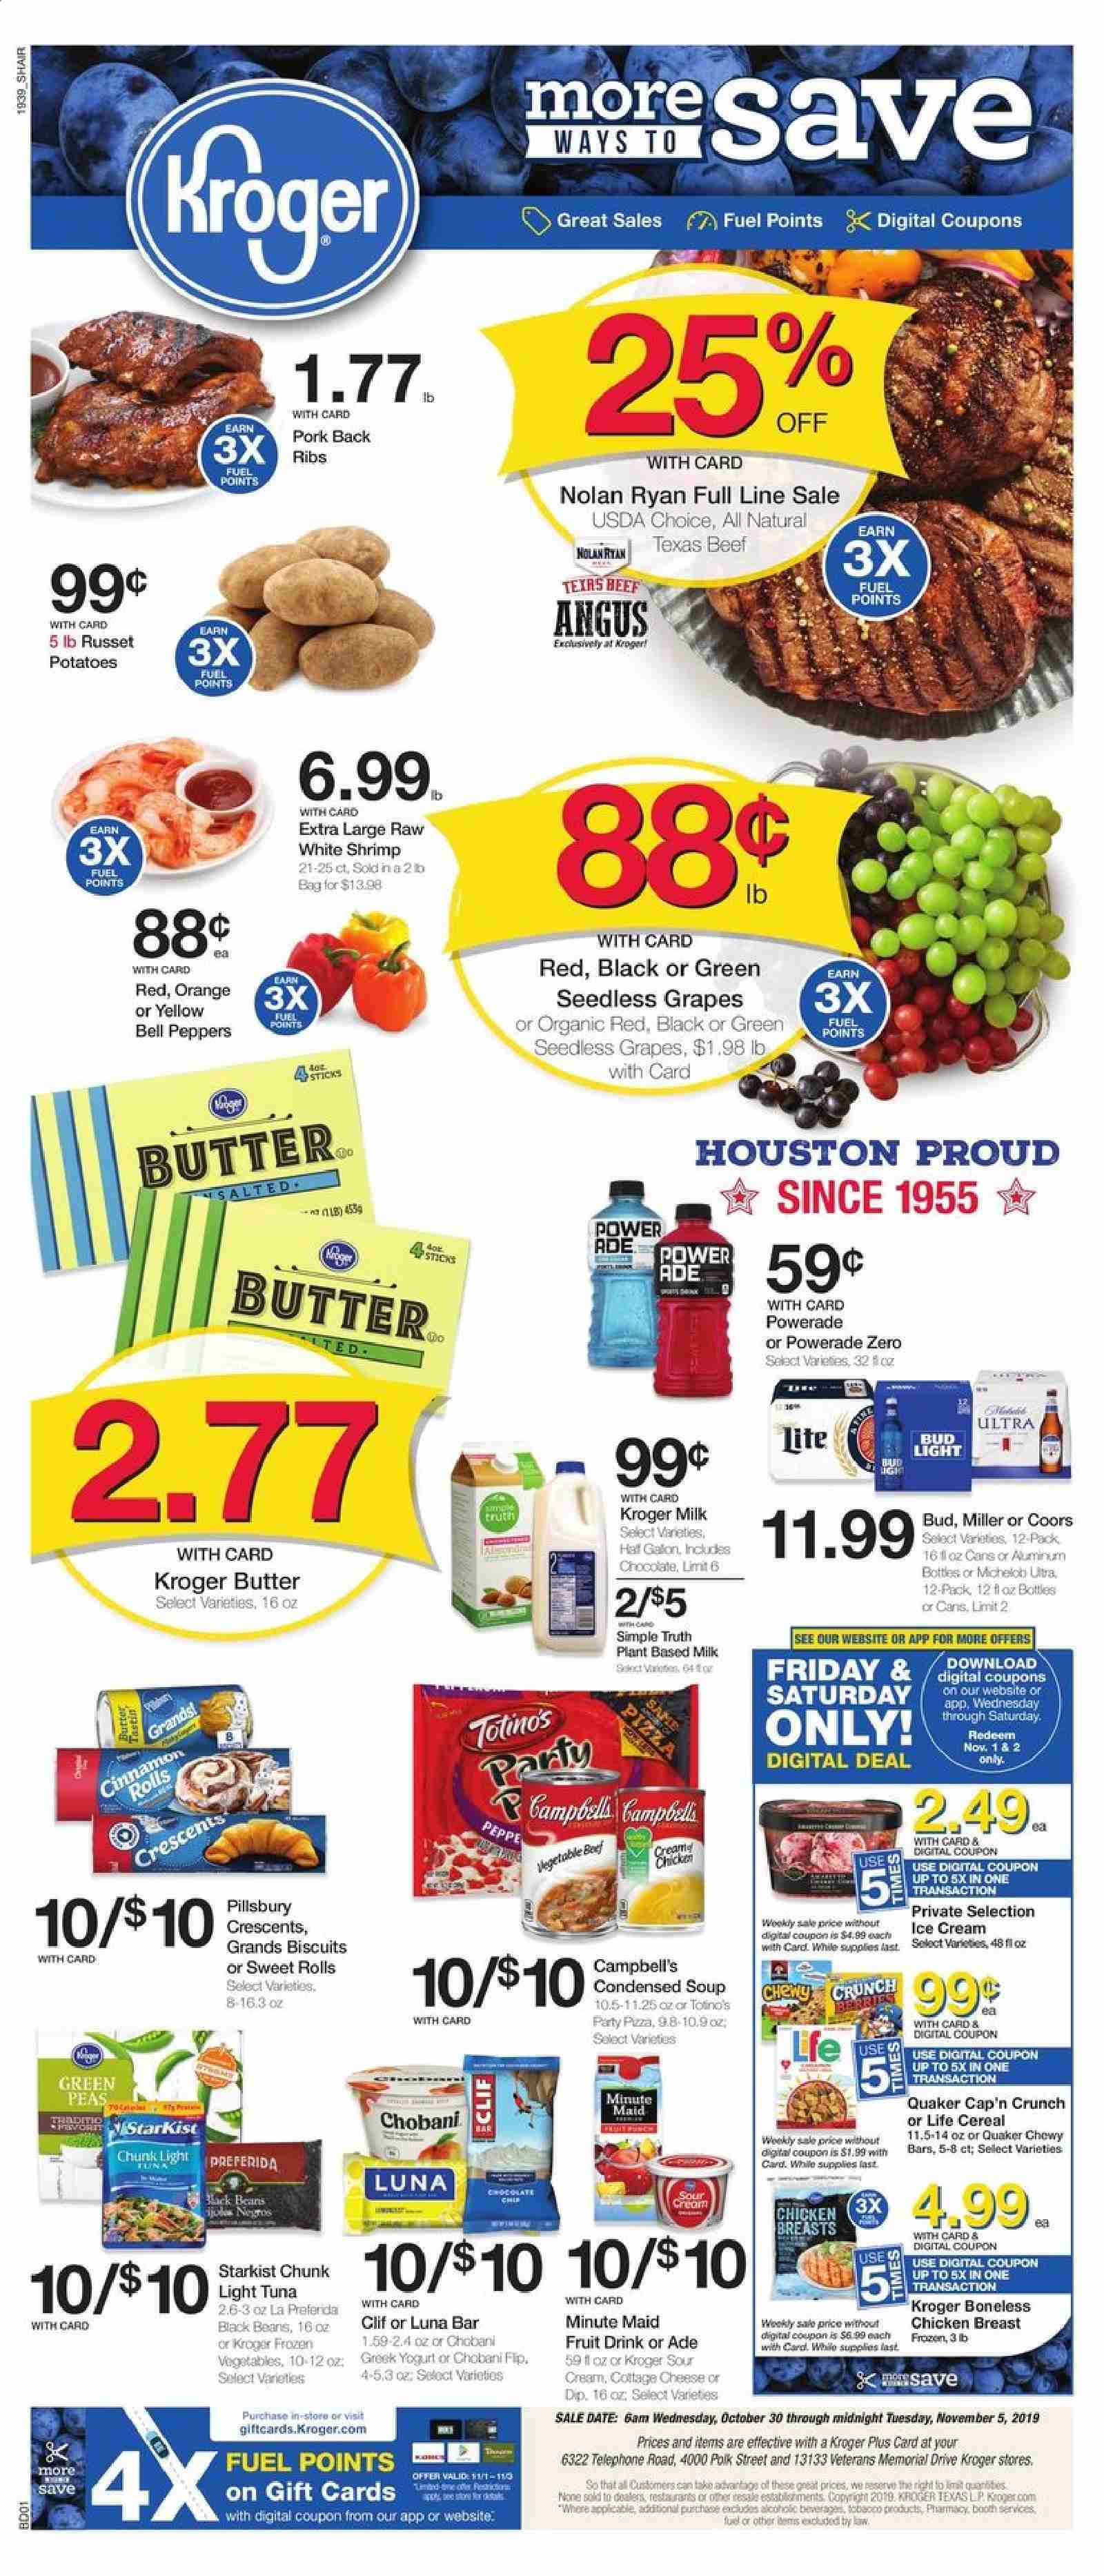 Kroger Flyer - 10.30.2019 - 11.05.2019 - Sales products - bag, beans, beef meat, bell peppers, biscuits, black beans, butter, campbell's, cap, cereals, cinnamon rolls, cottage cheese, frozen, frozen vegetables, fuel, grapes, greek yogurt, milk, seedless grapes, shrimp, sour cream, tuna, yogurt, ice cream, pizza, pork meat, potatoes, powerade, chicken, chicken breast, peas, orange, organic, chocolate, cheese, condensed soup, soup, vegetables, cereal, light tuna, bud light, fruit drink, ribs, drink, fruit, miller, coors, michelob, peppers, cream. Page 1.